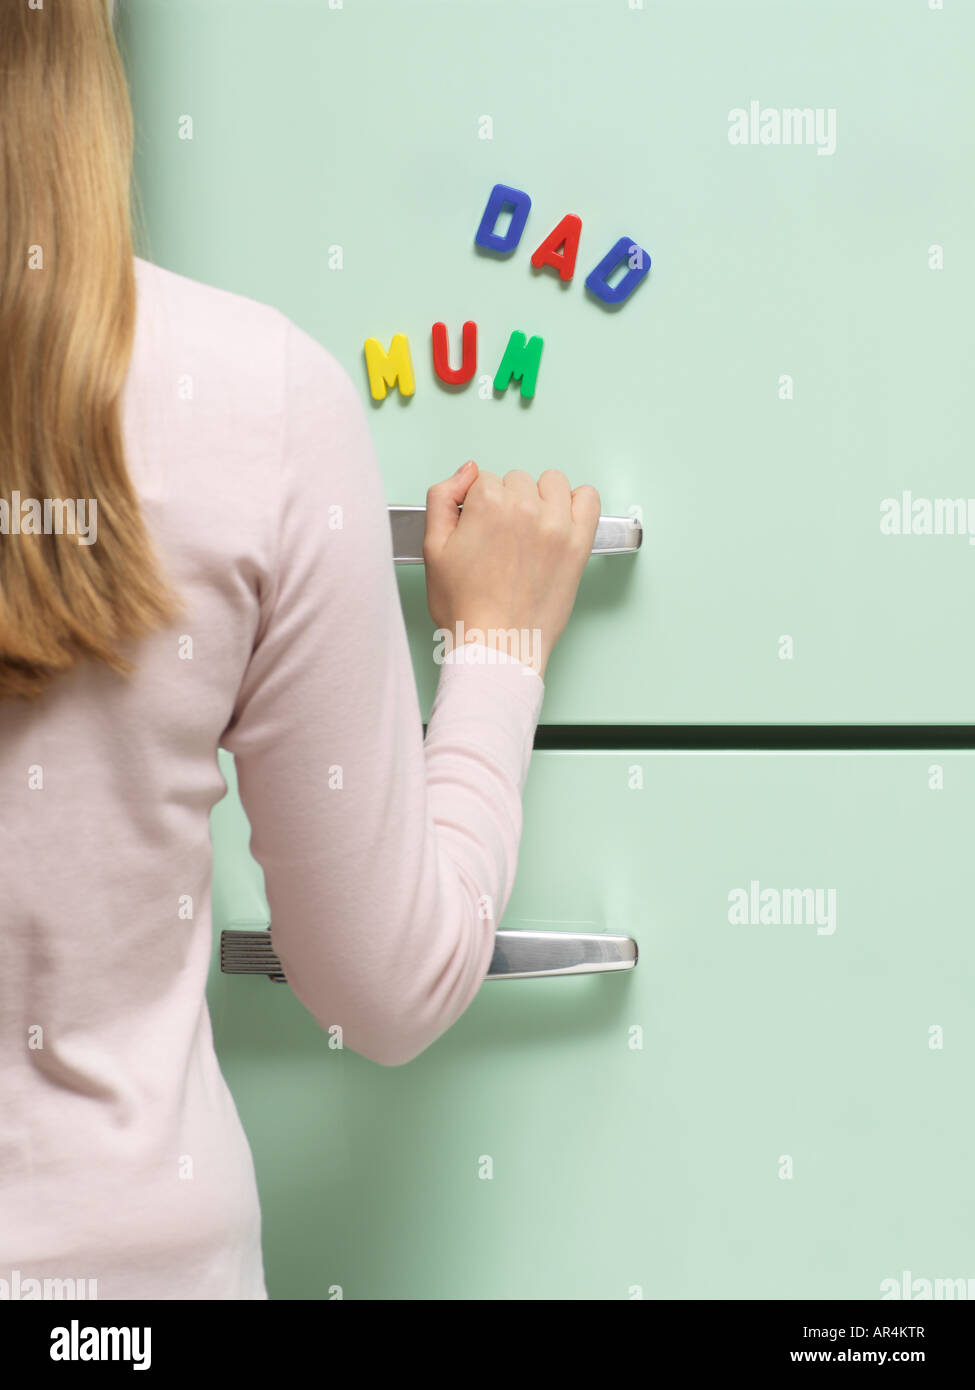 Words written with magnets on refrigerator - Stock Image